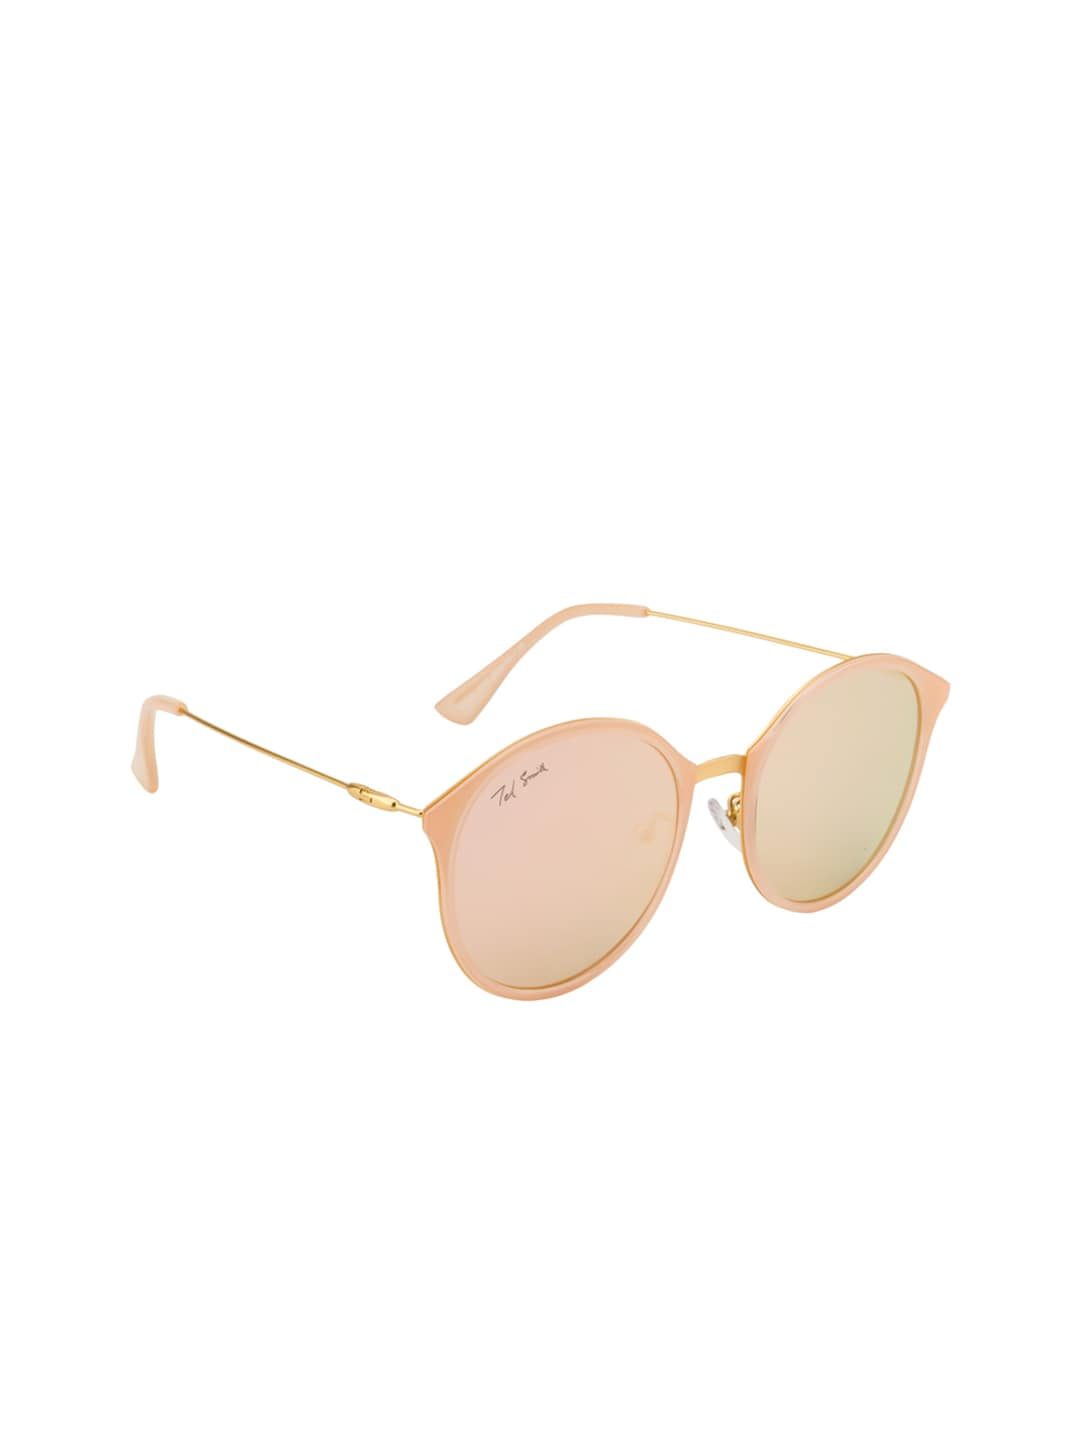 Ted Smith Women Pink Mirrored Oval Sunglasses